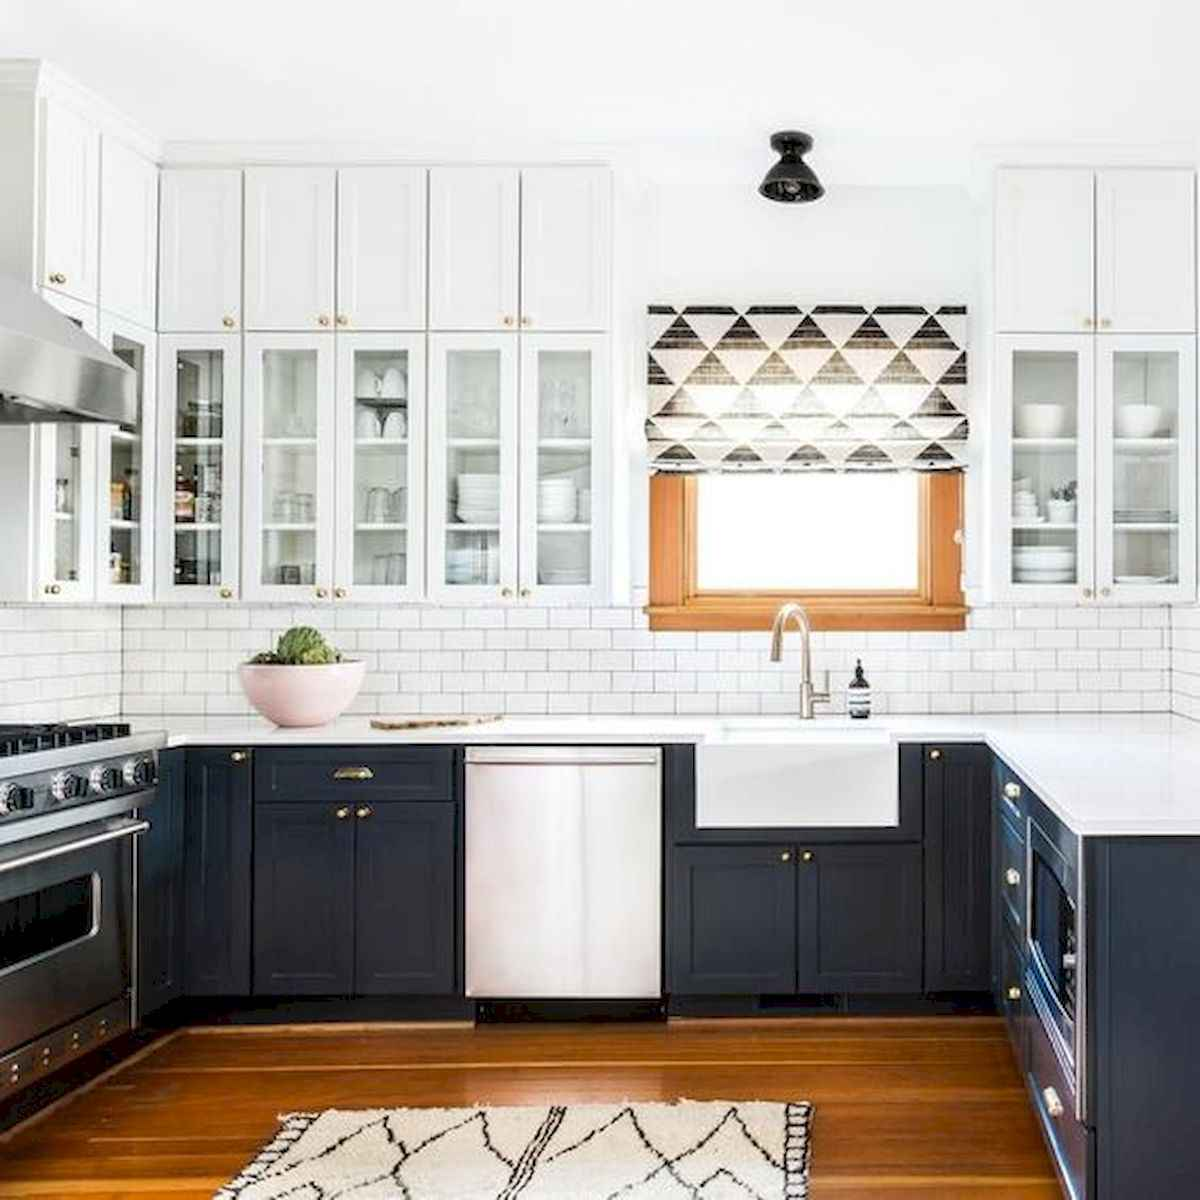 60 Lovely Painted Kitchen Cabinets Two Tone Design Ideas (40)